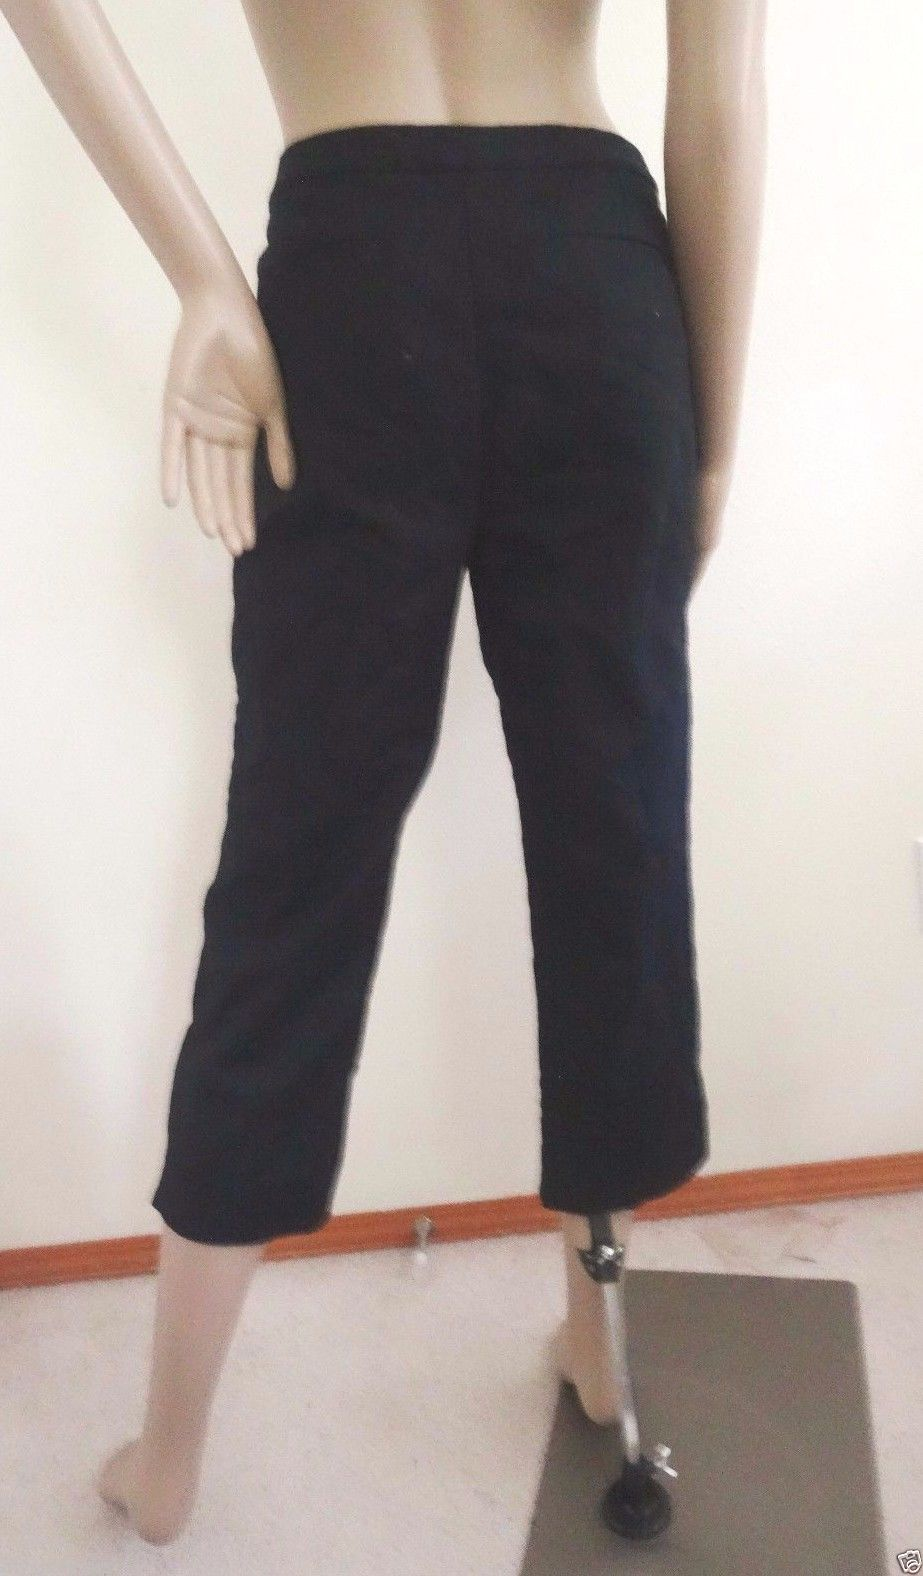 Primary image for Nwt Sandro Control Top  Classic Rise Stretch Cropped Pants Capri Sz 8 Black $50